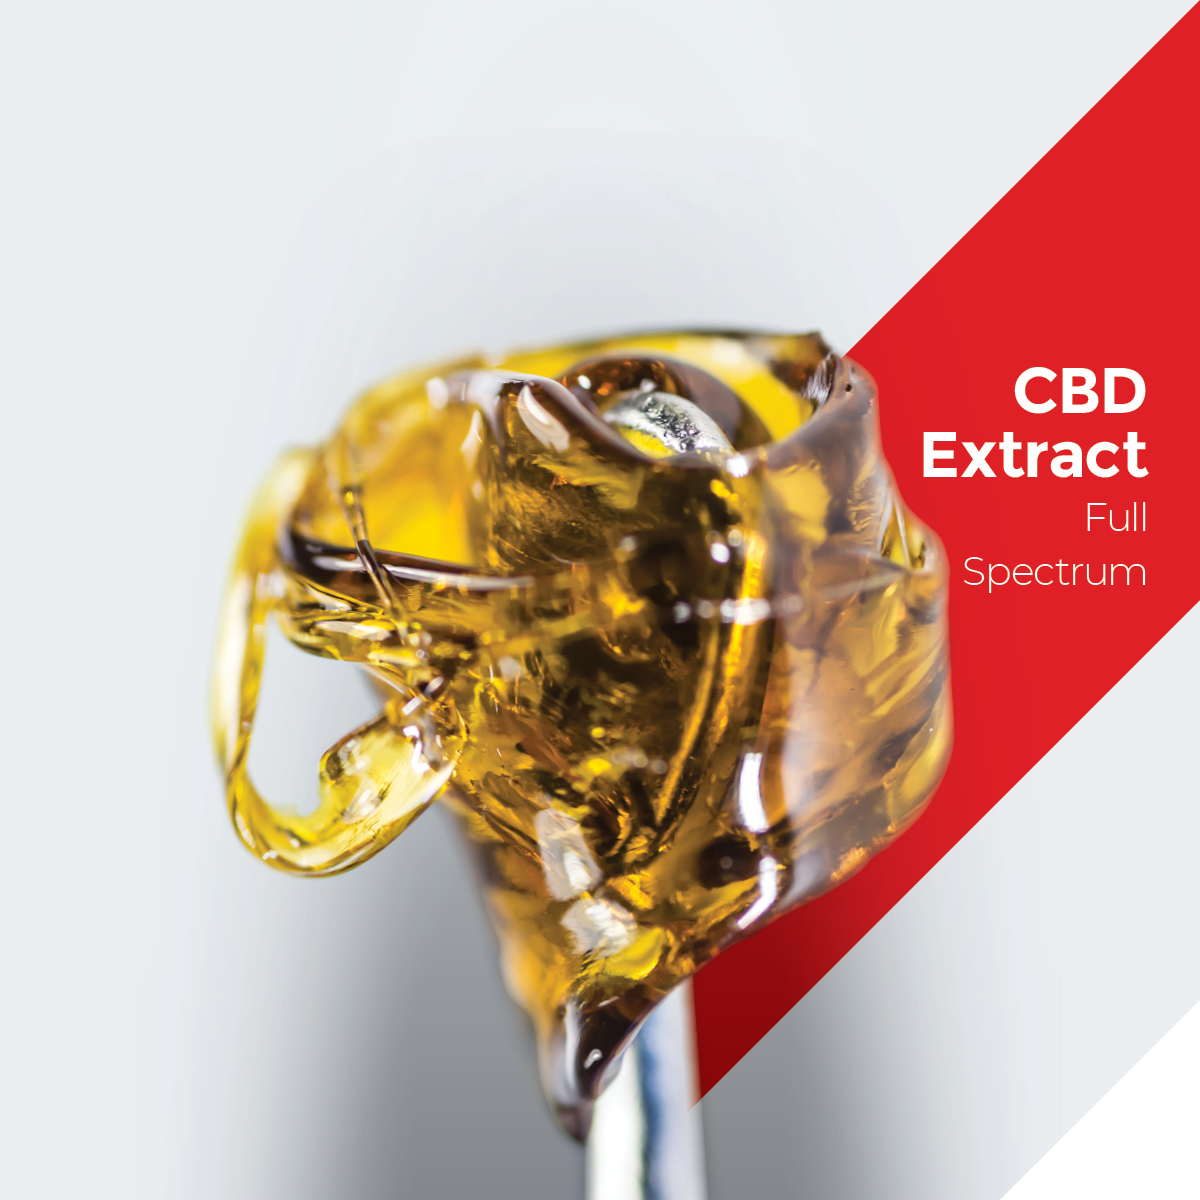 CBD Extract FUll-Spectrum